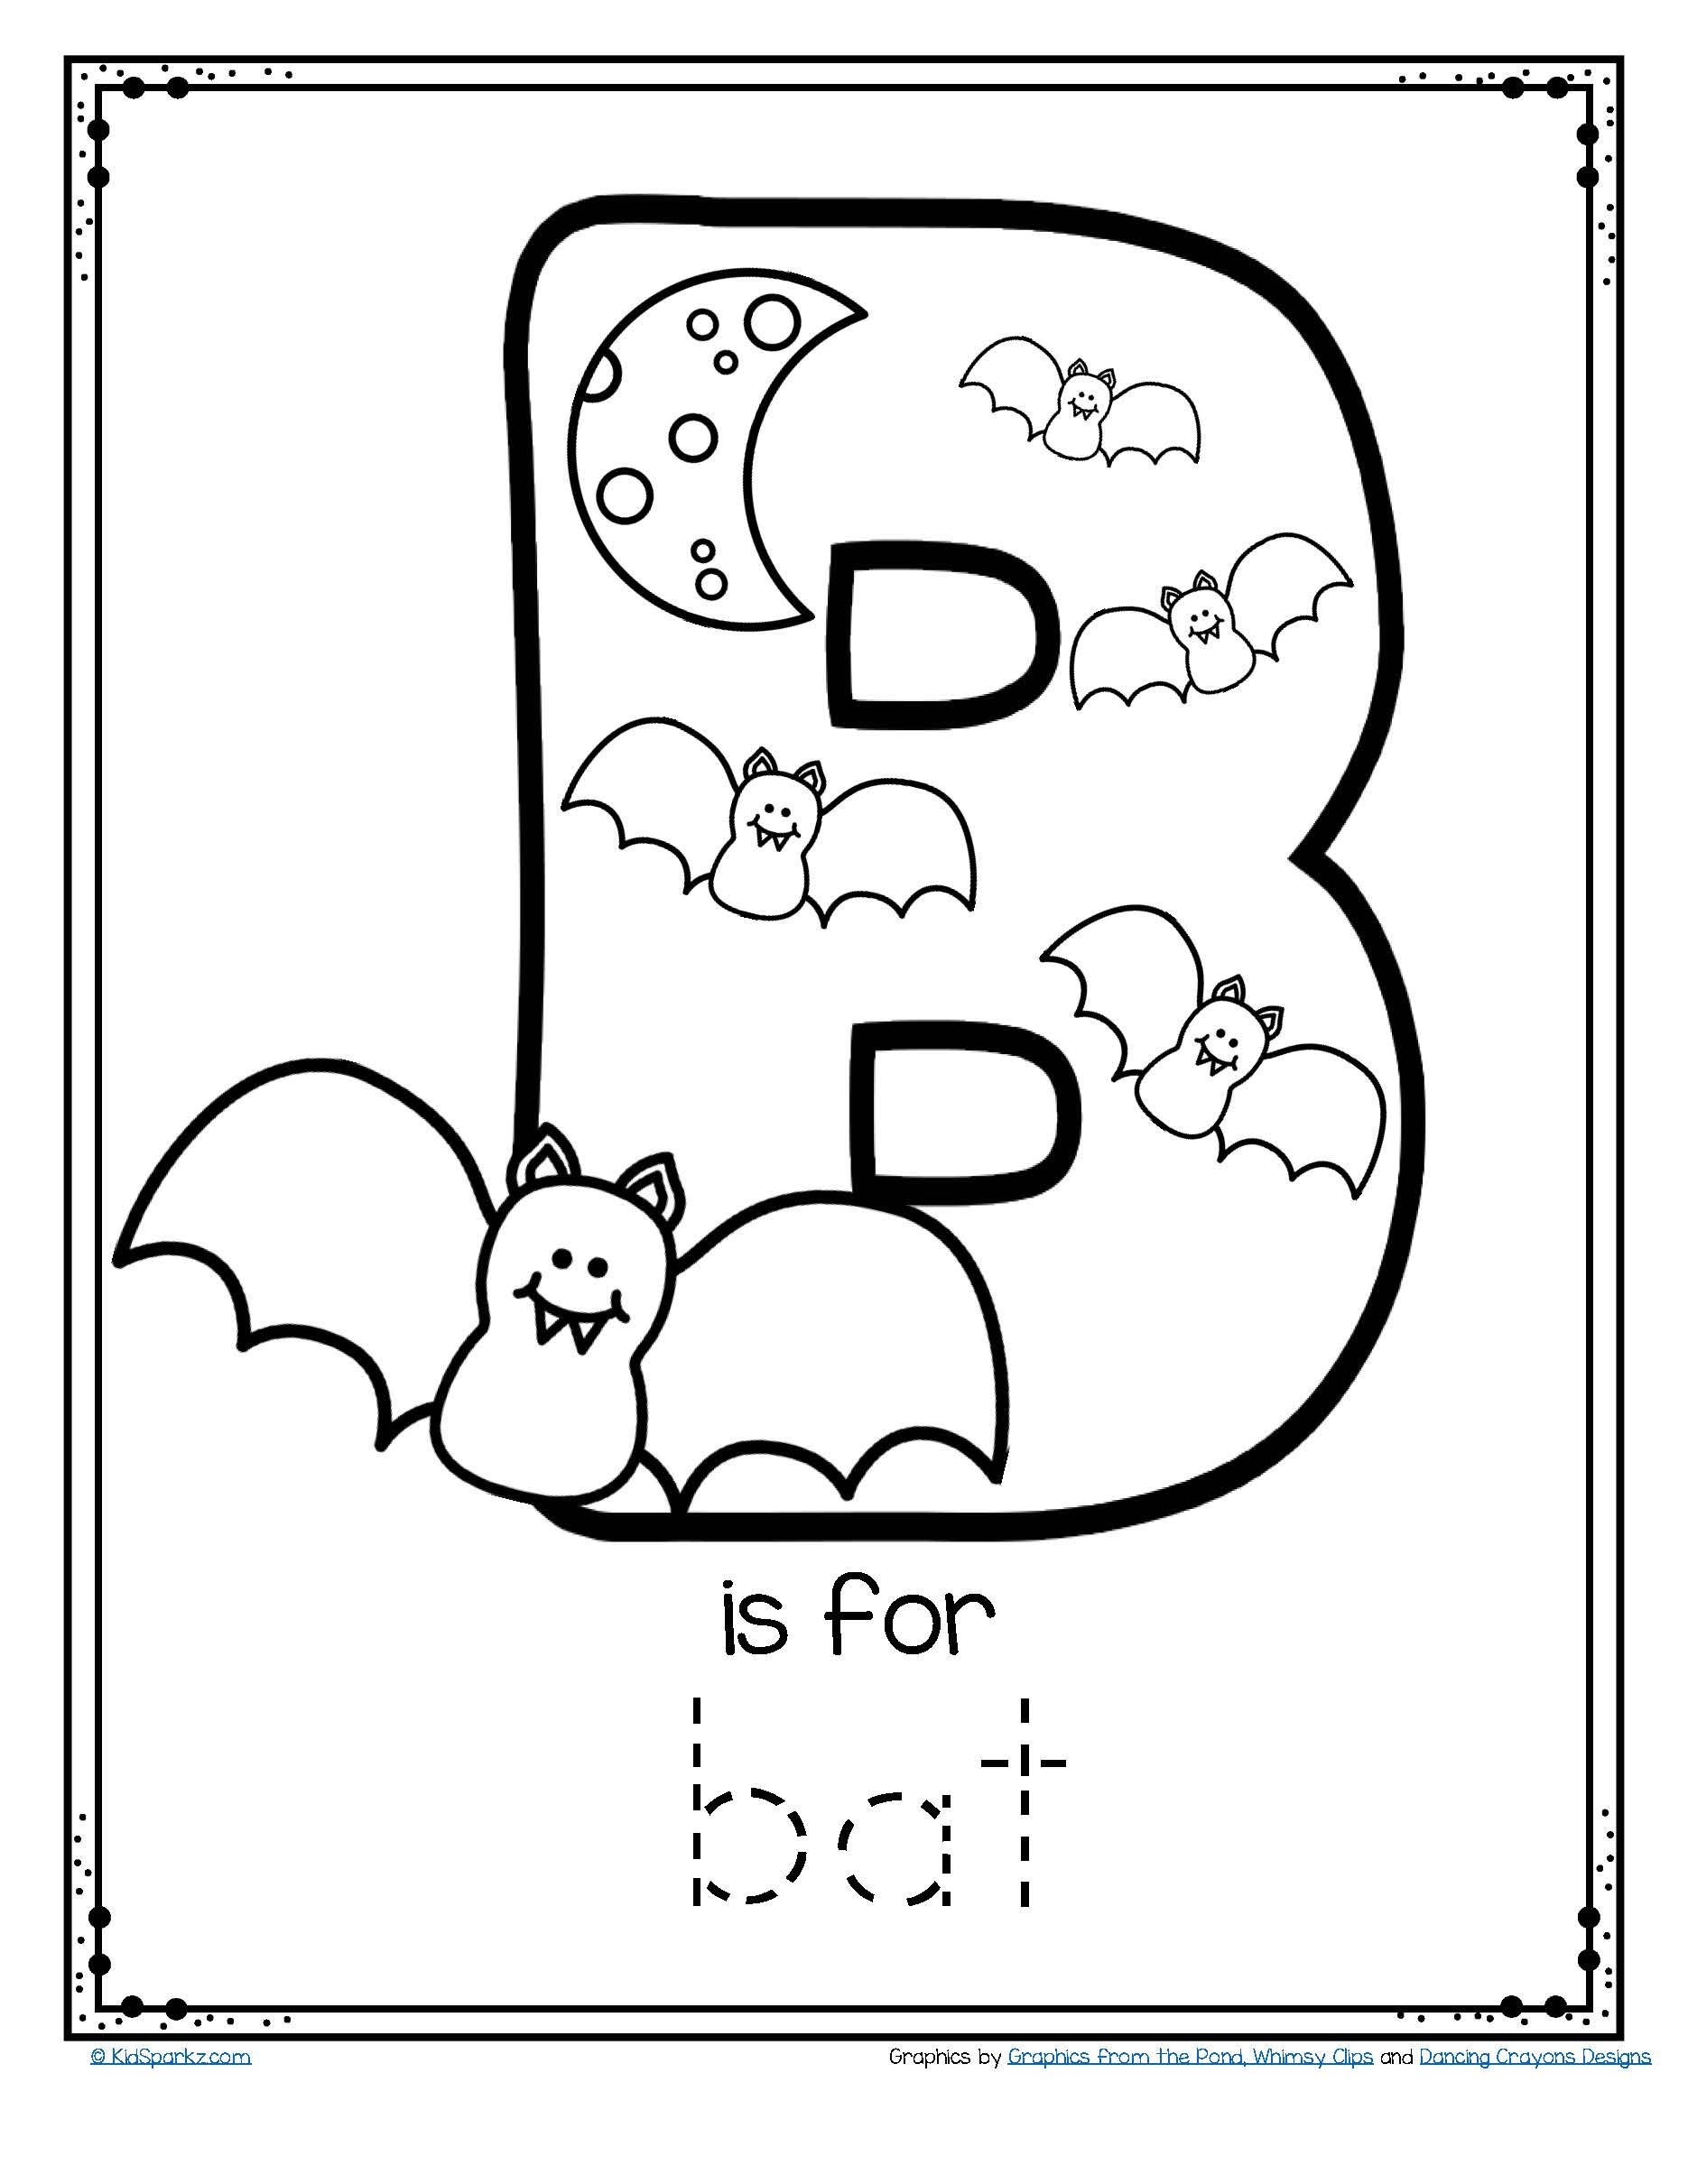 Kumon Printable Worksheets Free Free Alphabet Tracing and Coloring Printable is for the